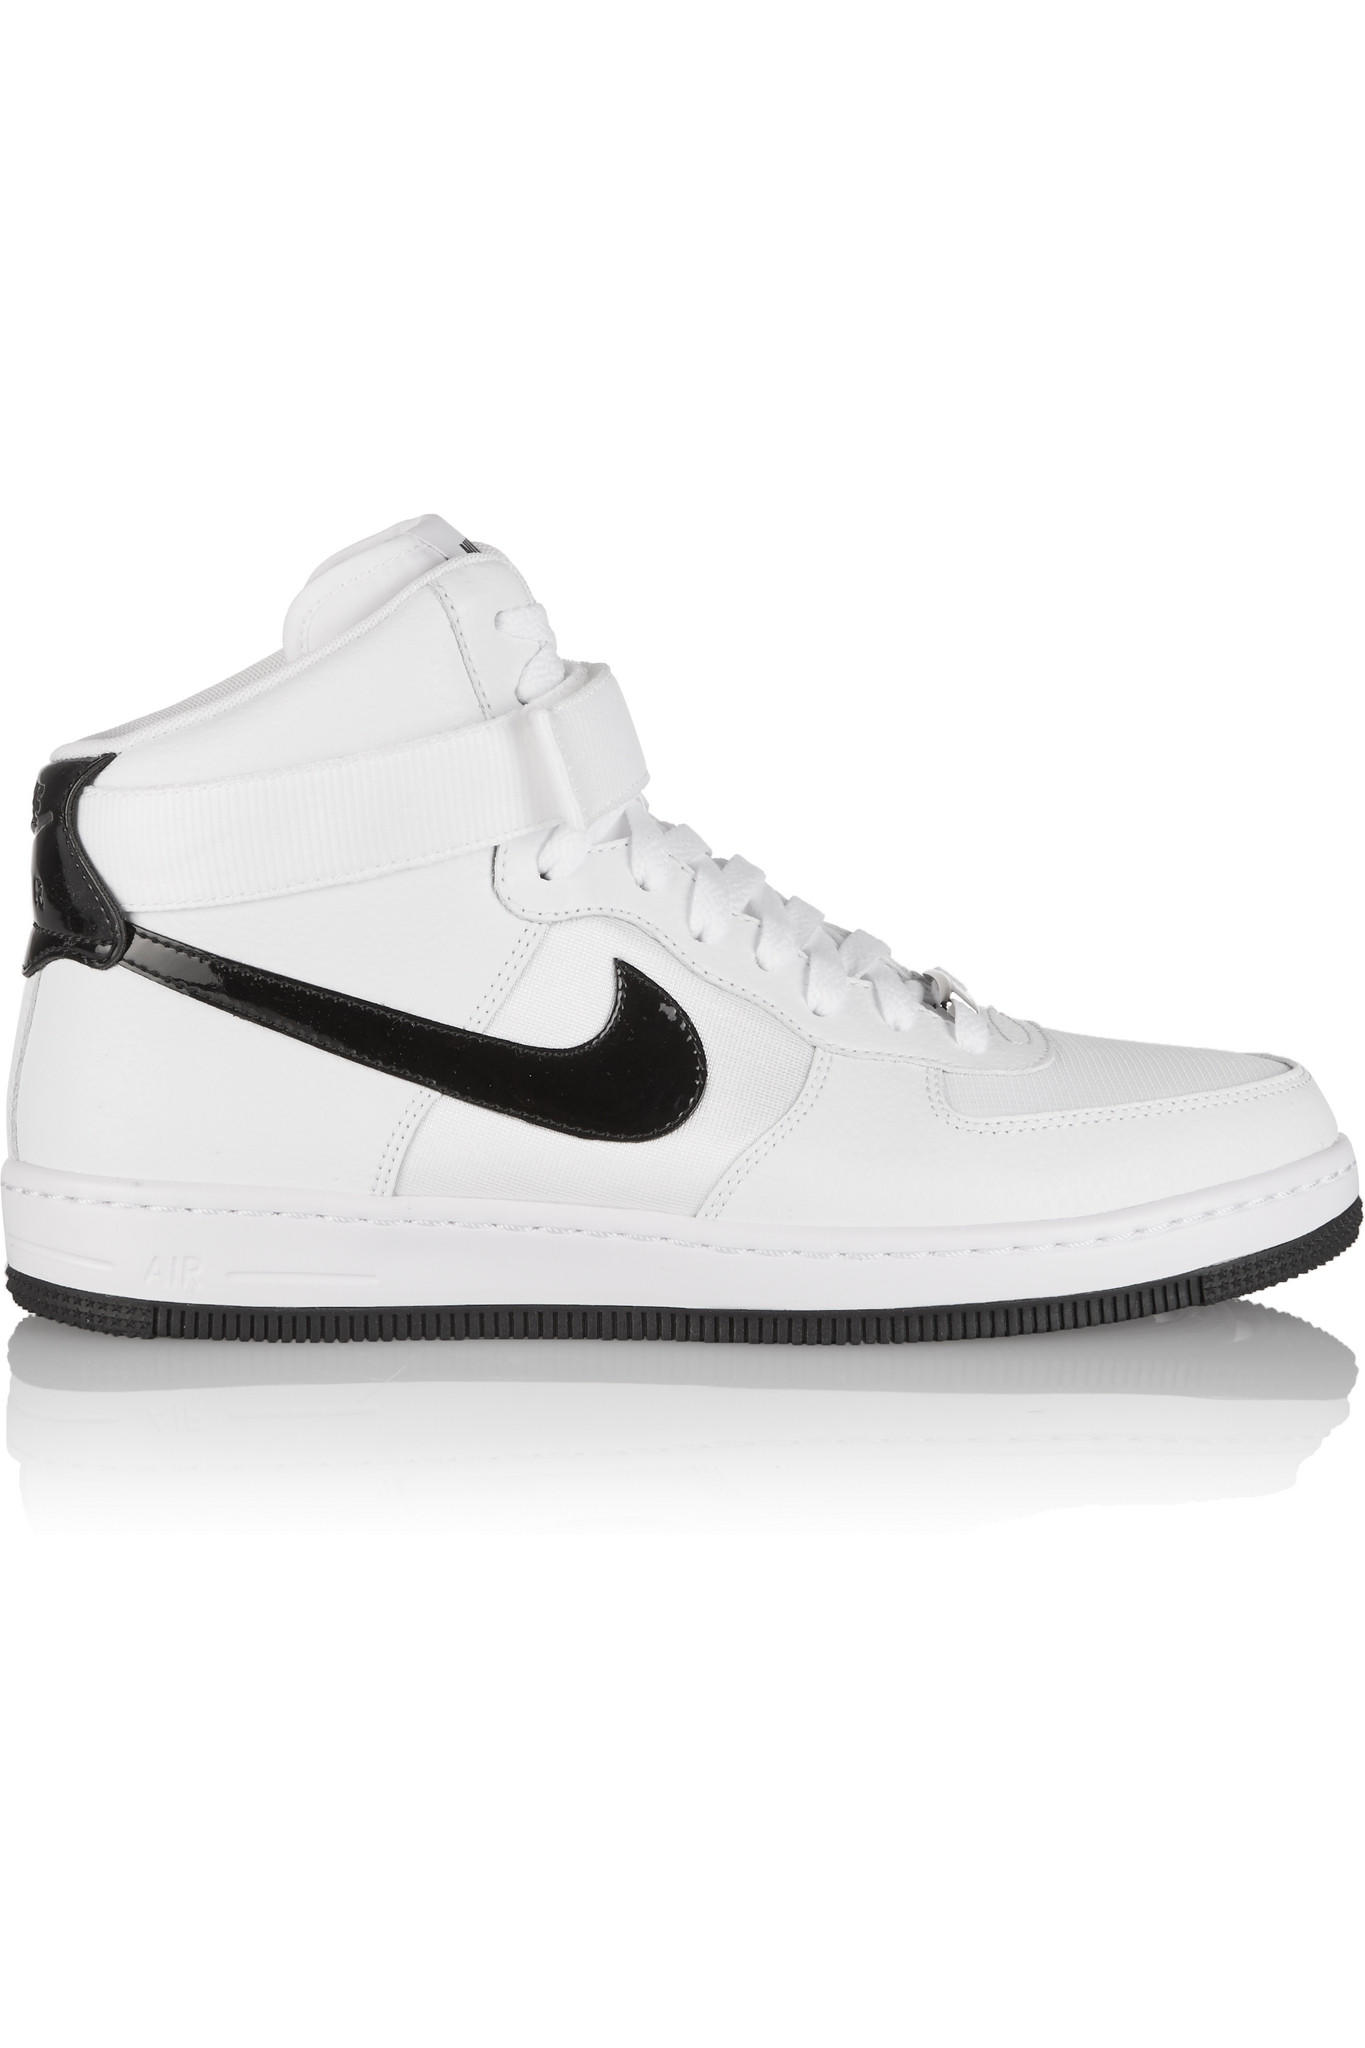 Nike - Air Force 1 Ultra Force leather from NET-A-PORTER c15423ffe9e9